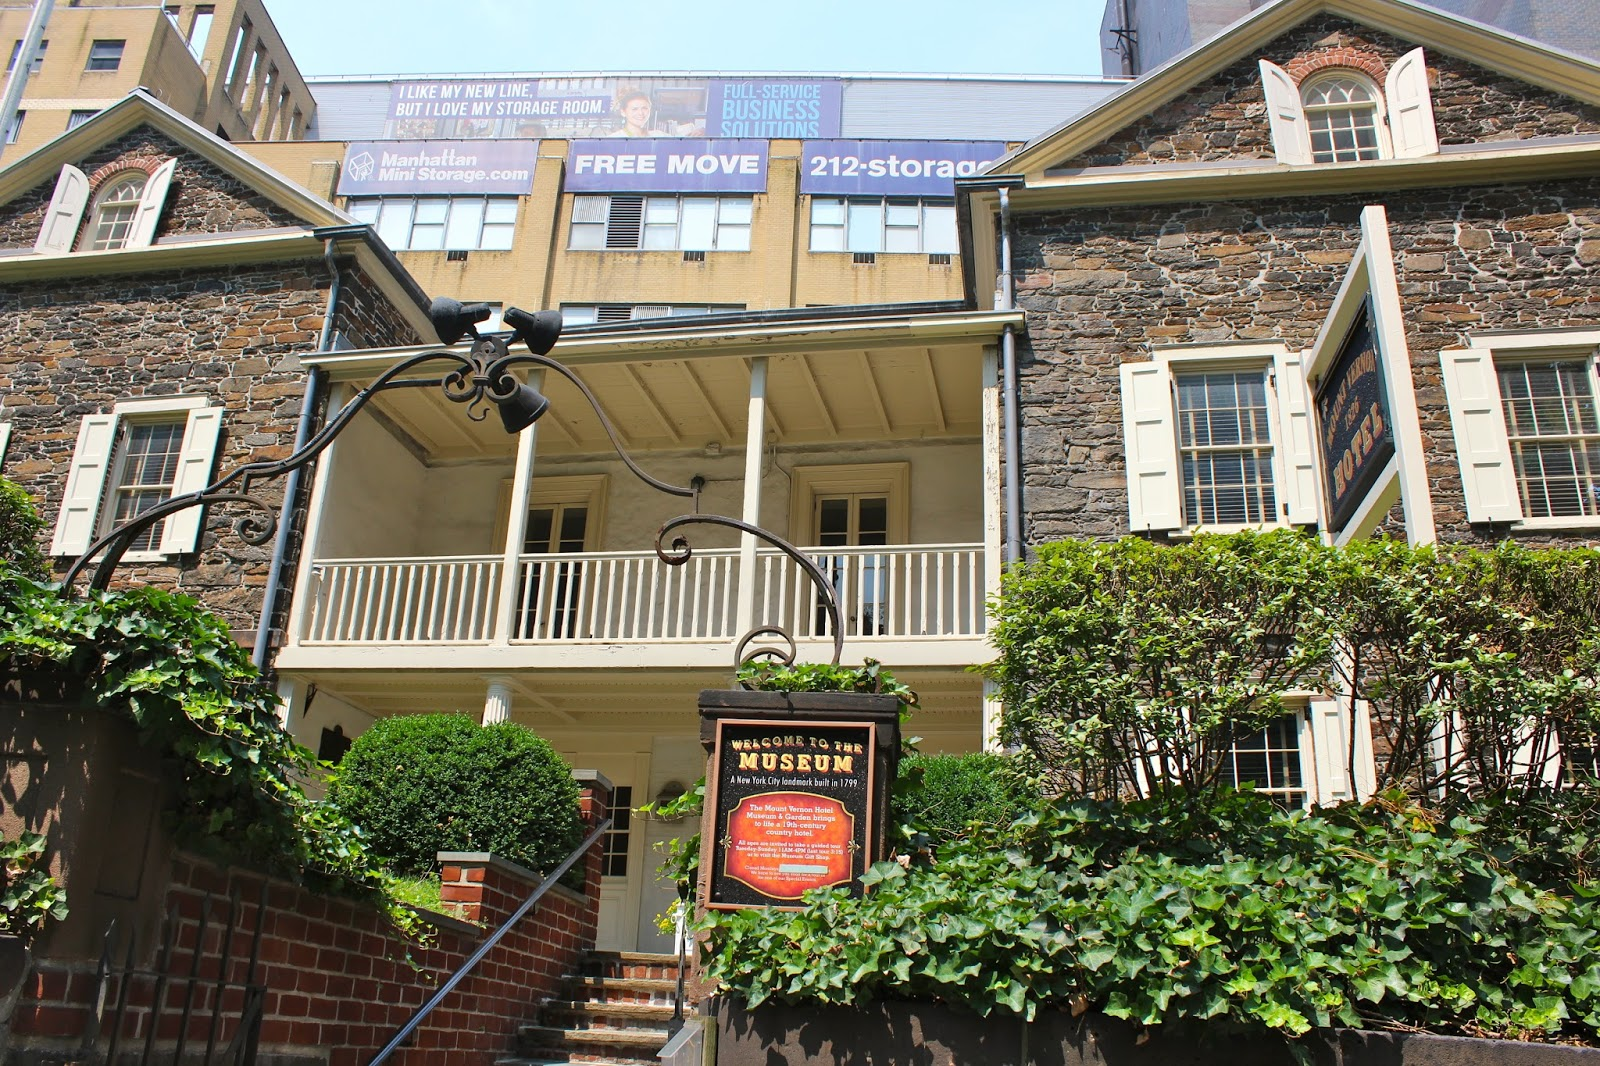 Discover One Of The Oldest Buildings In Manhattan And One Of New York  Cityu0027s Hidden Treasures, The Mount Vernon Hotel Museum And Garden, Located  On The ...